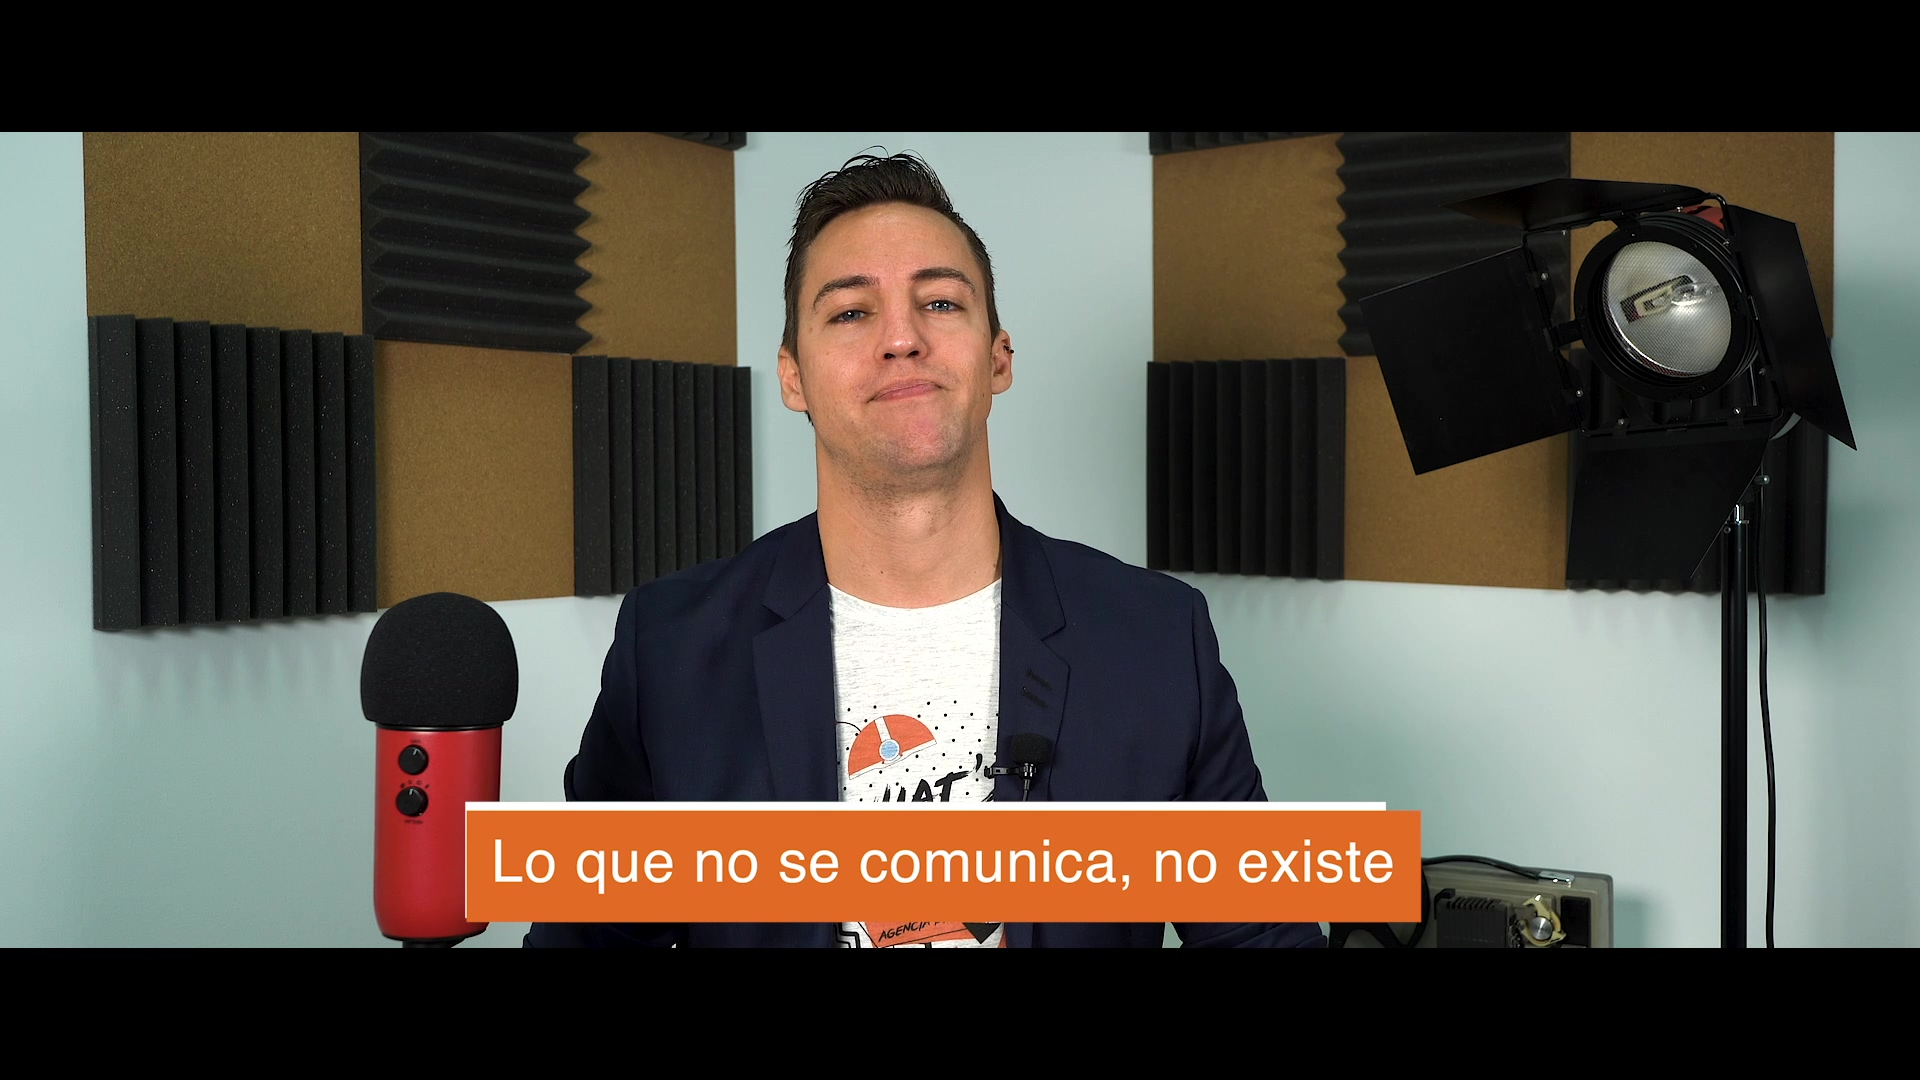 VIDEO_WEB_STAND_UP_OCCAM